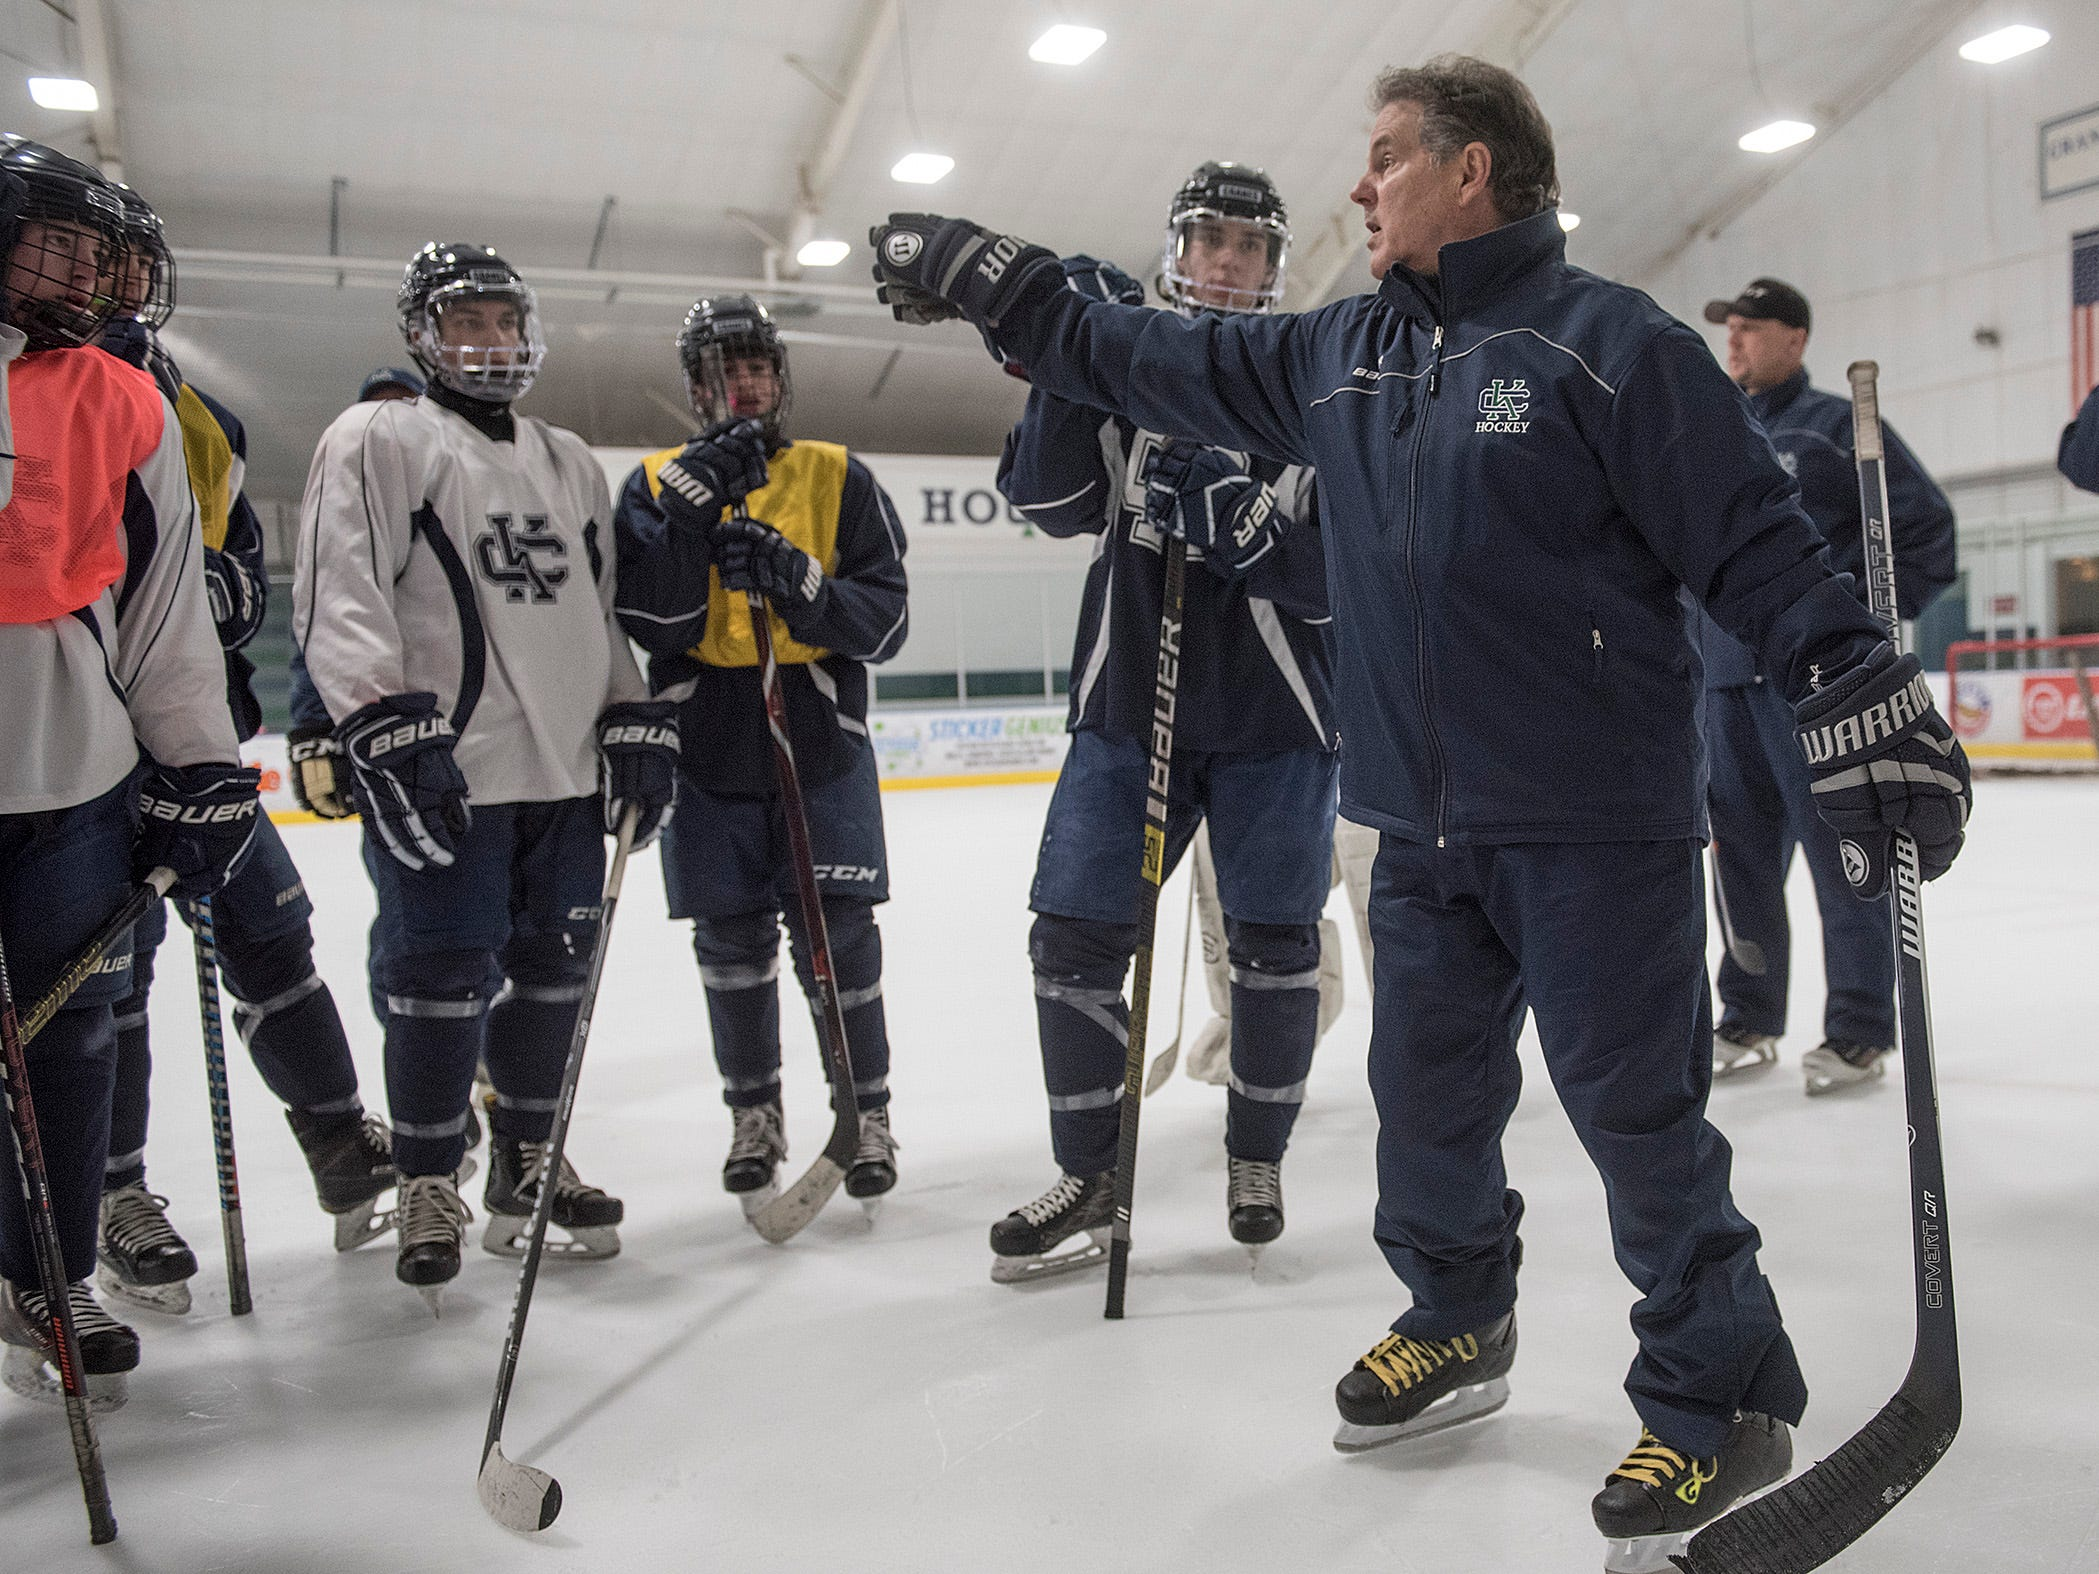 Cranbrook Hockey Coach Andy Weidenbach is not real happy about the practice, and lets the team know what he expects.